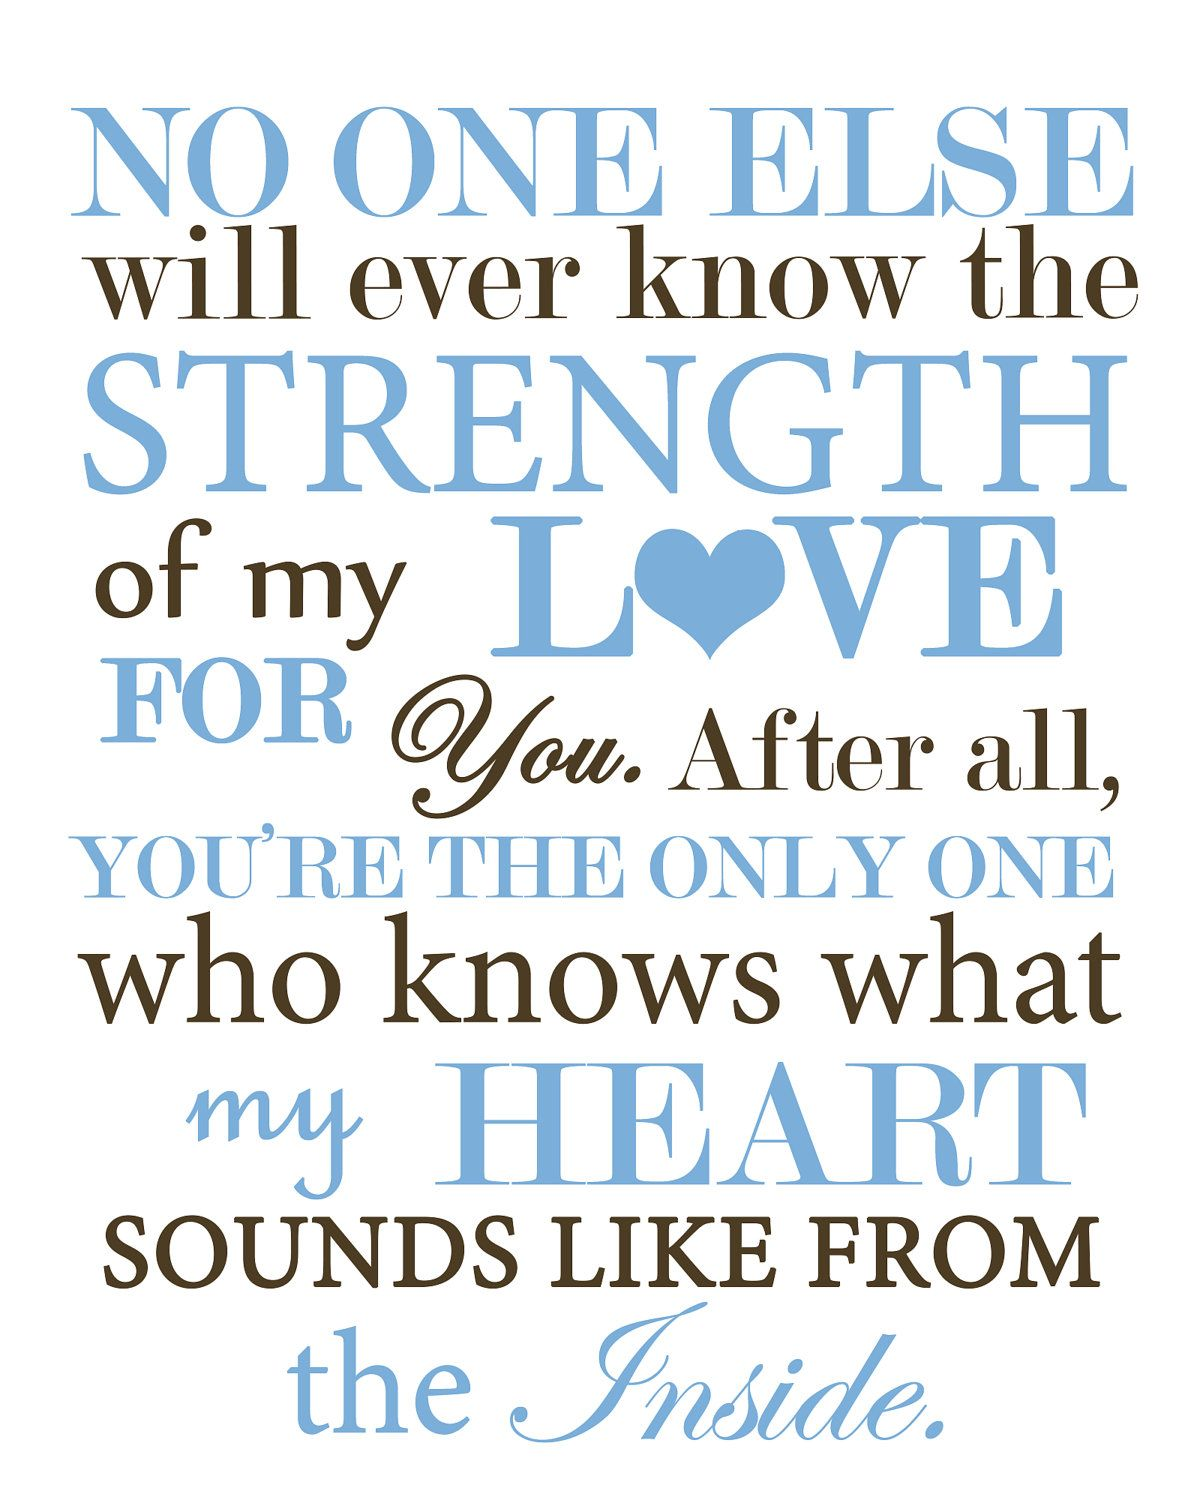 The Heart Know Who He Loves: Wall Of Qoutes On Pinterest